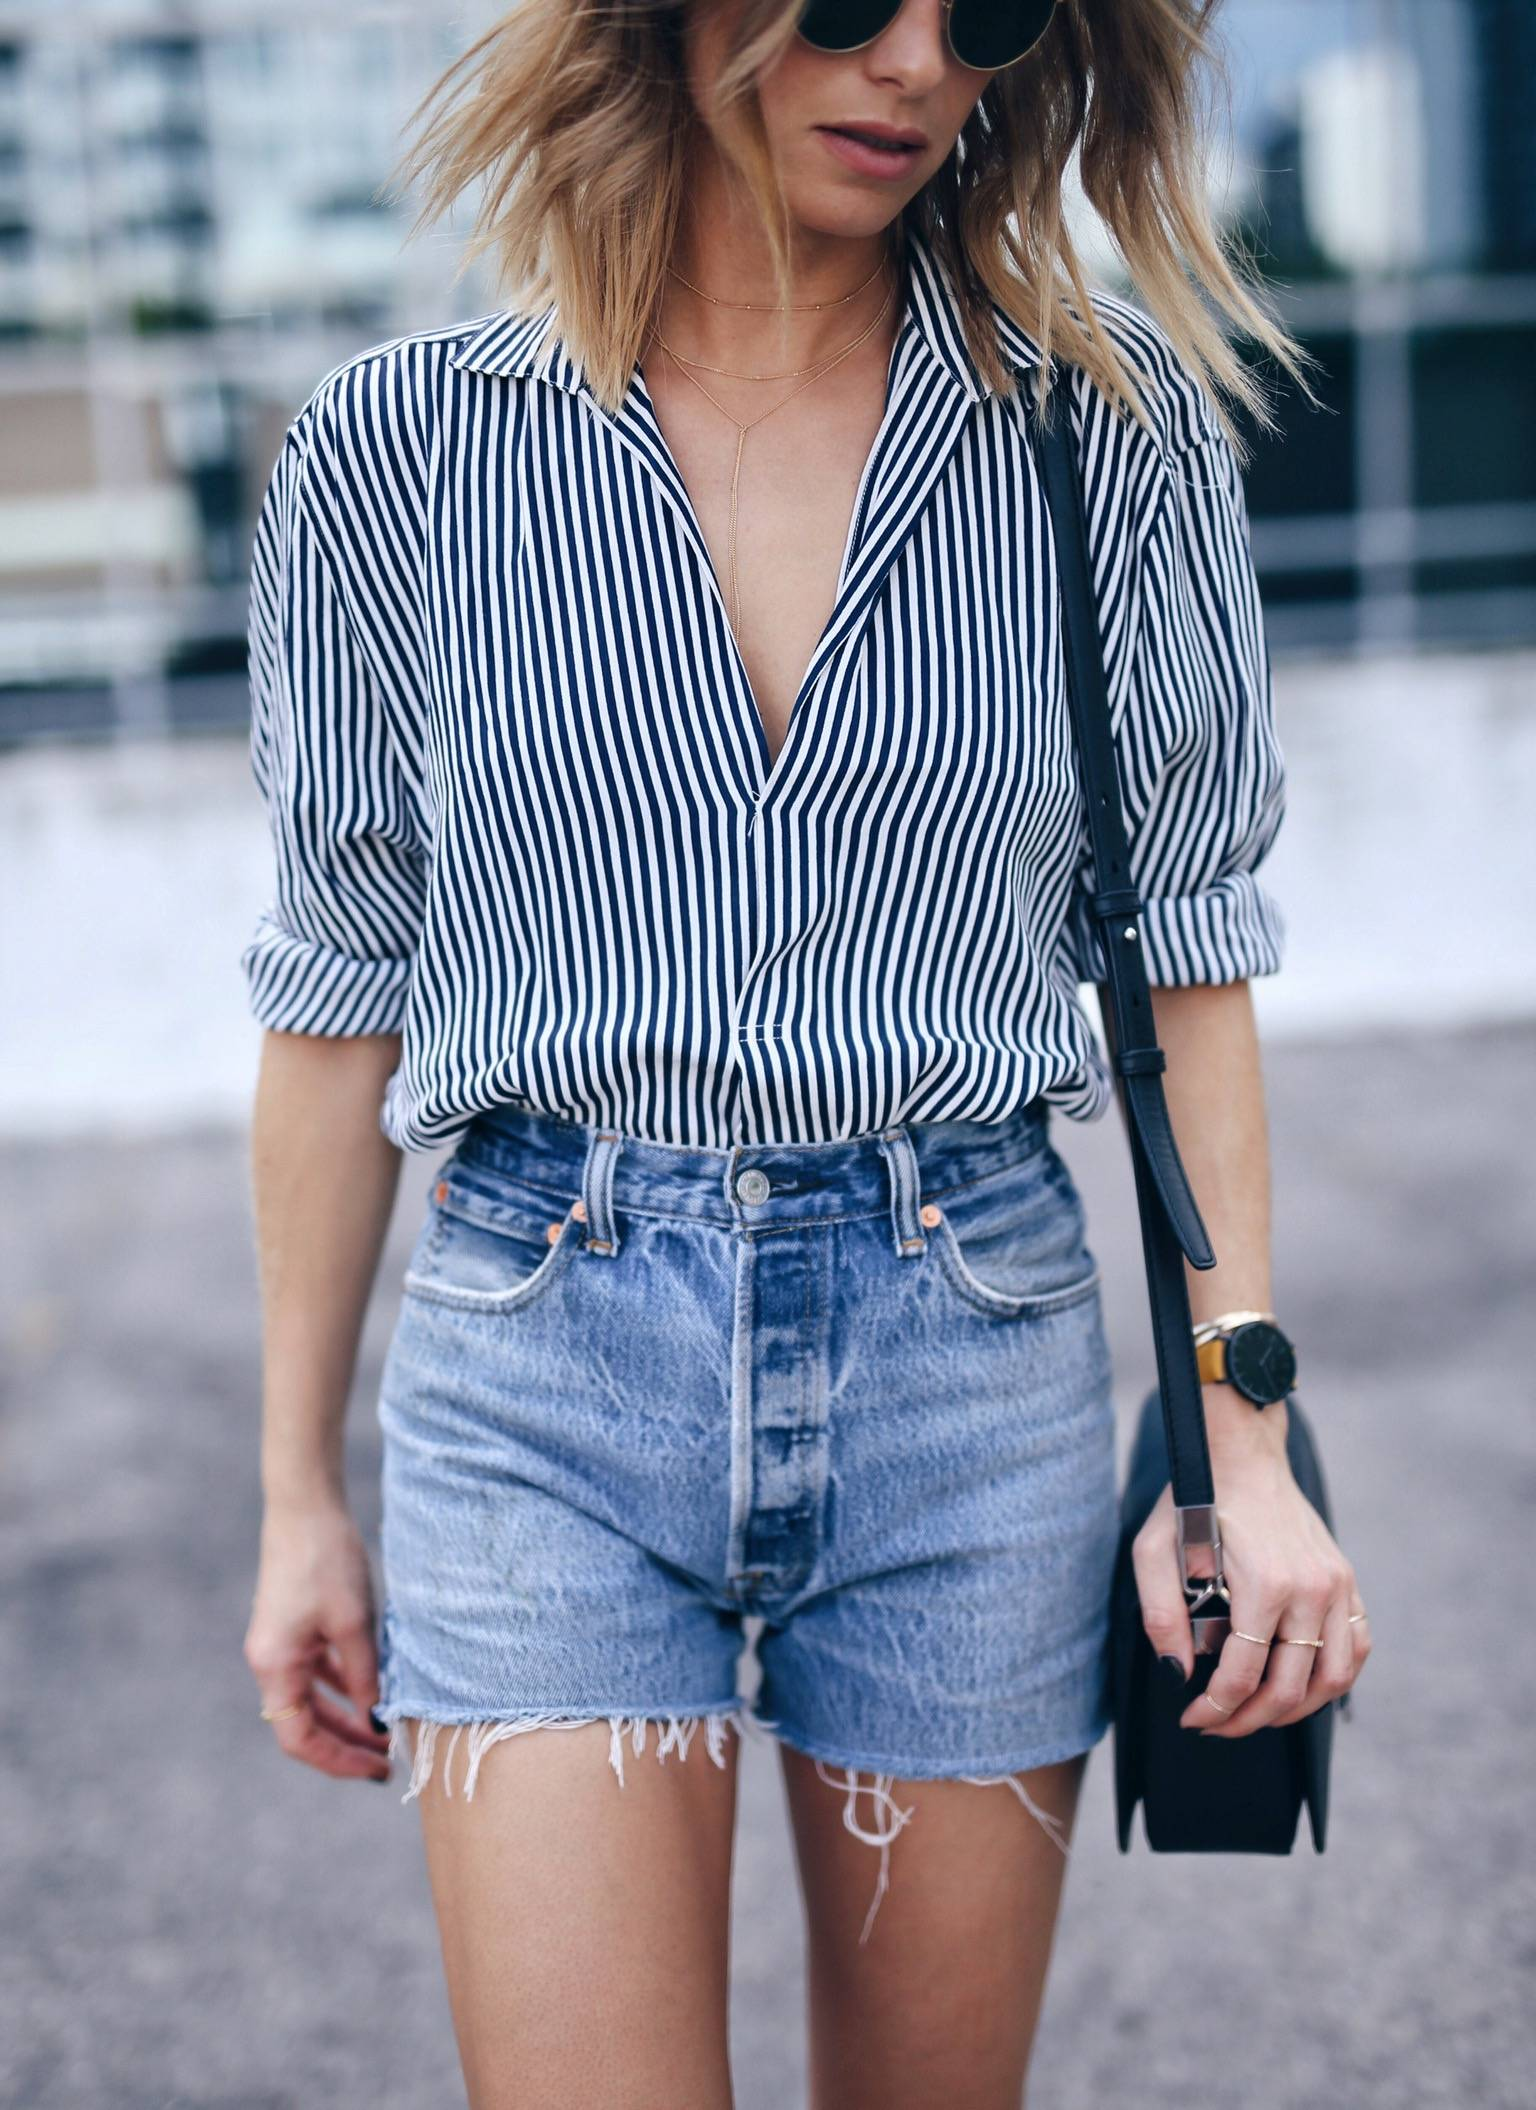 Jill Lansky of the August Diaries wearing denim cut-off shorts and striped blouse